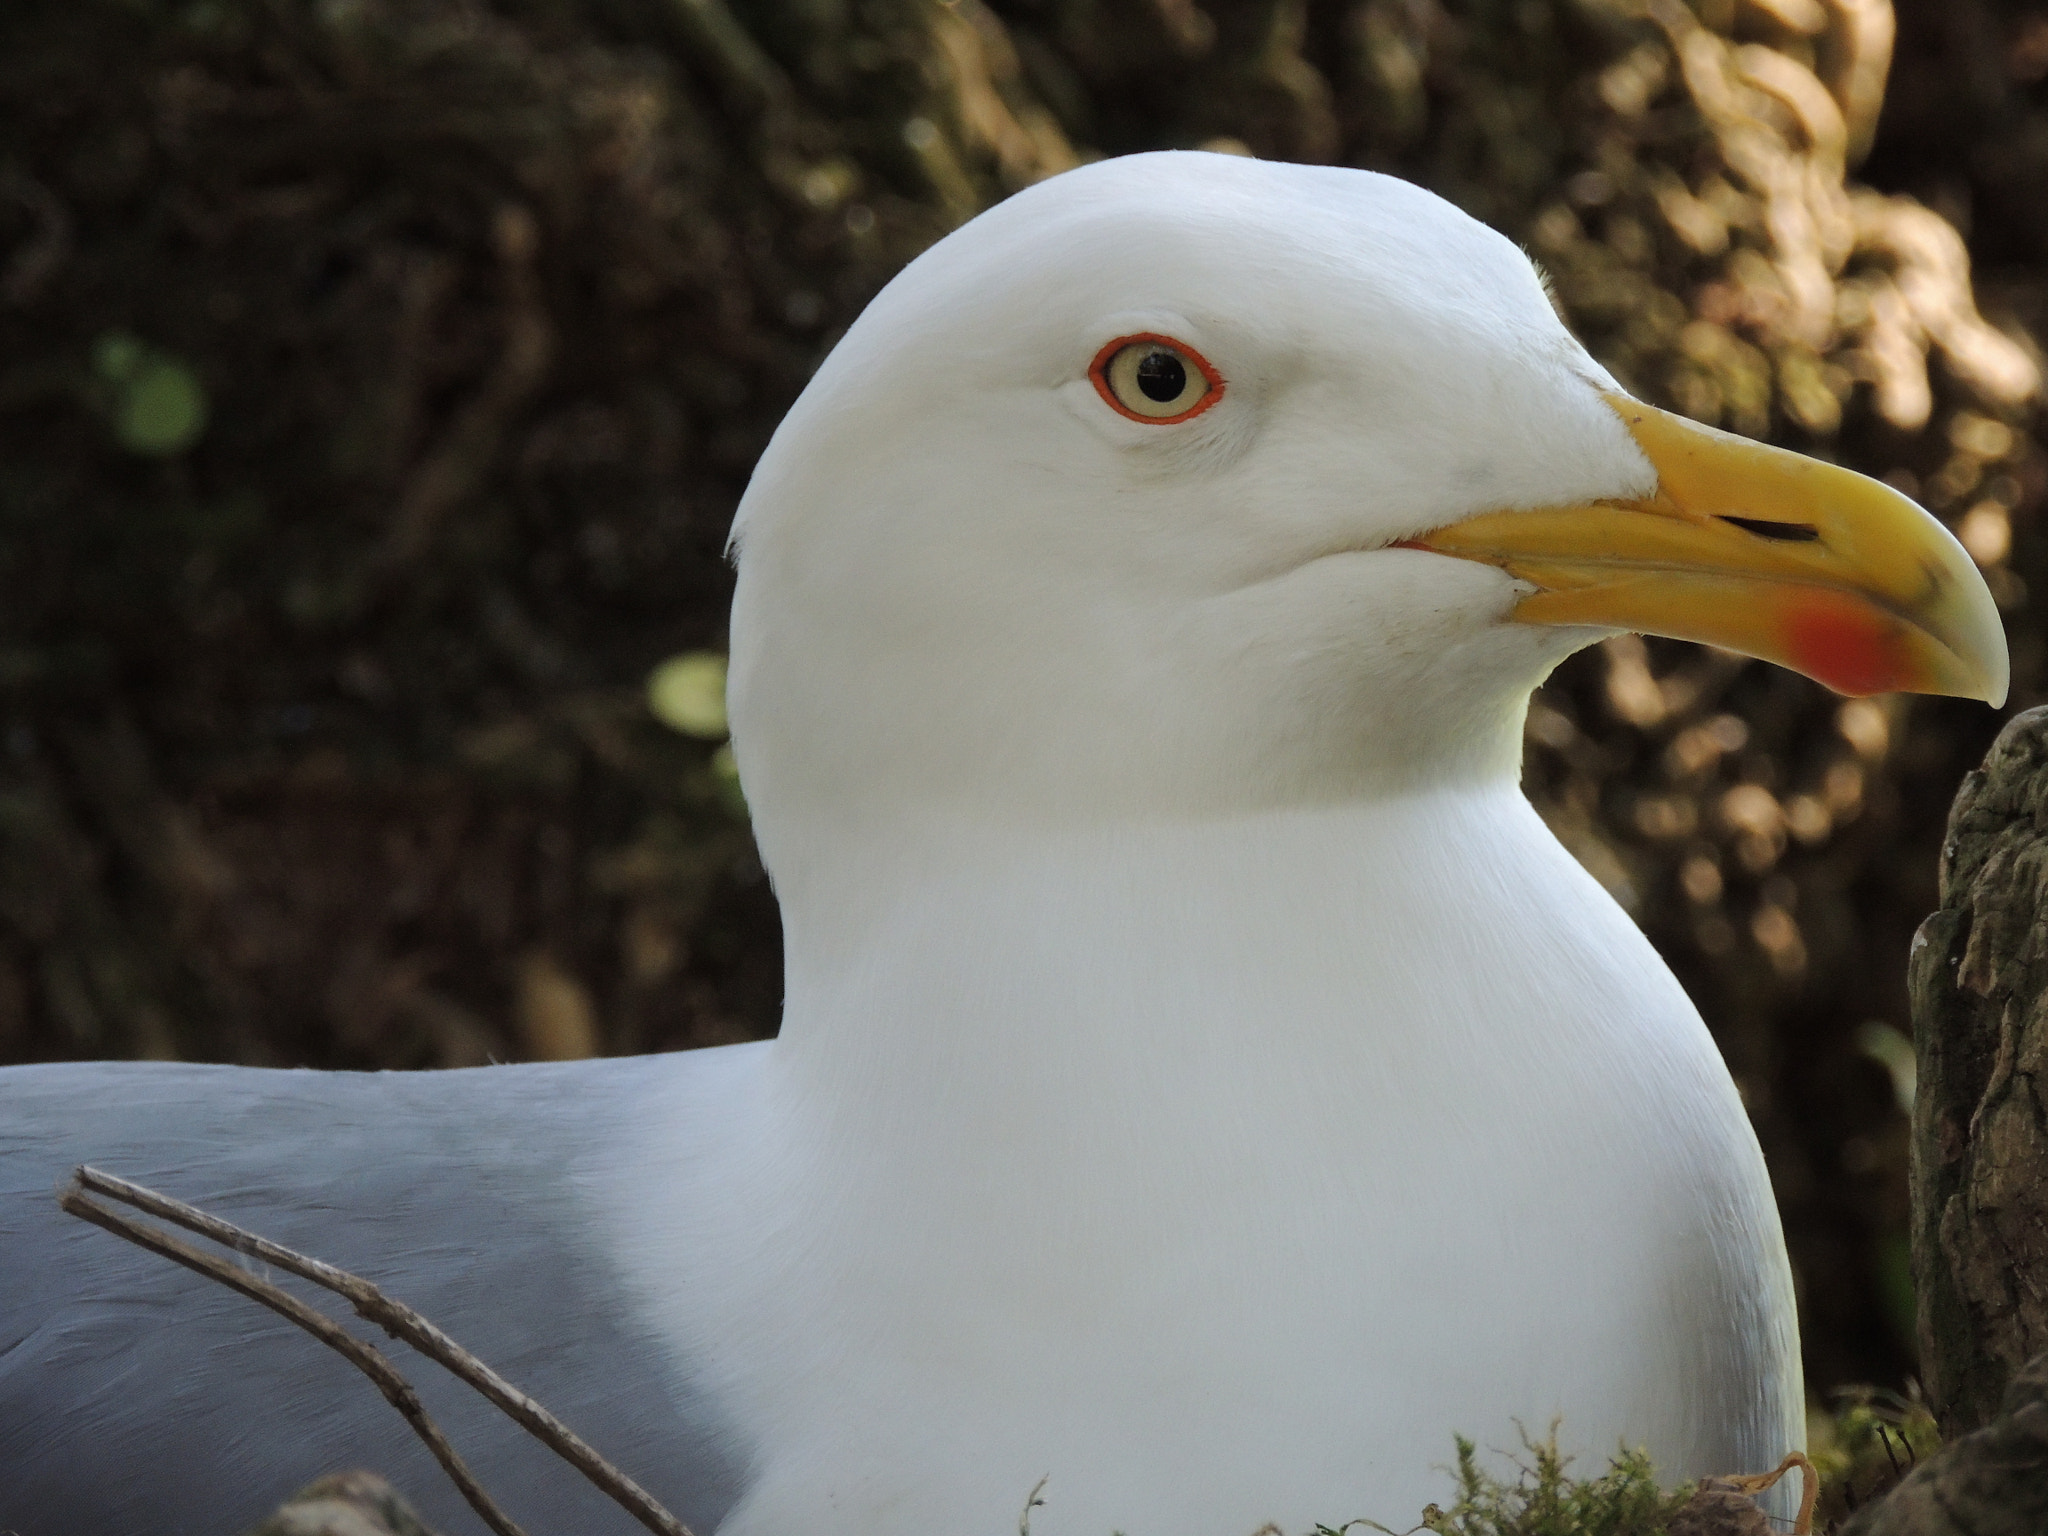 Photograph Gabbiano reale (Larus michahellis) by Manuela Stacchiotti on 500px